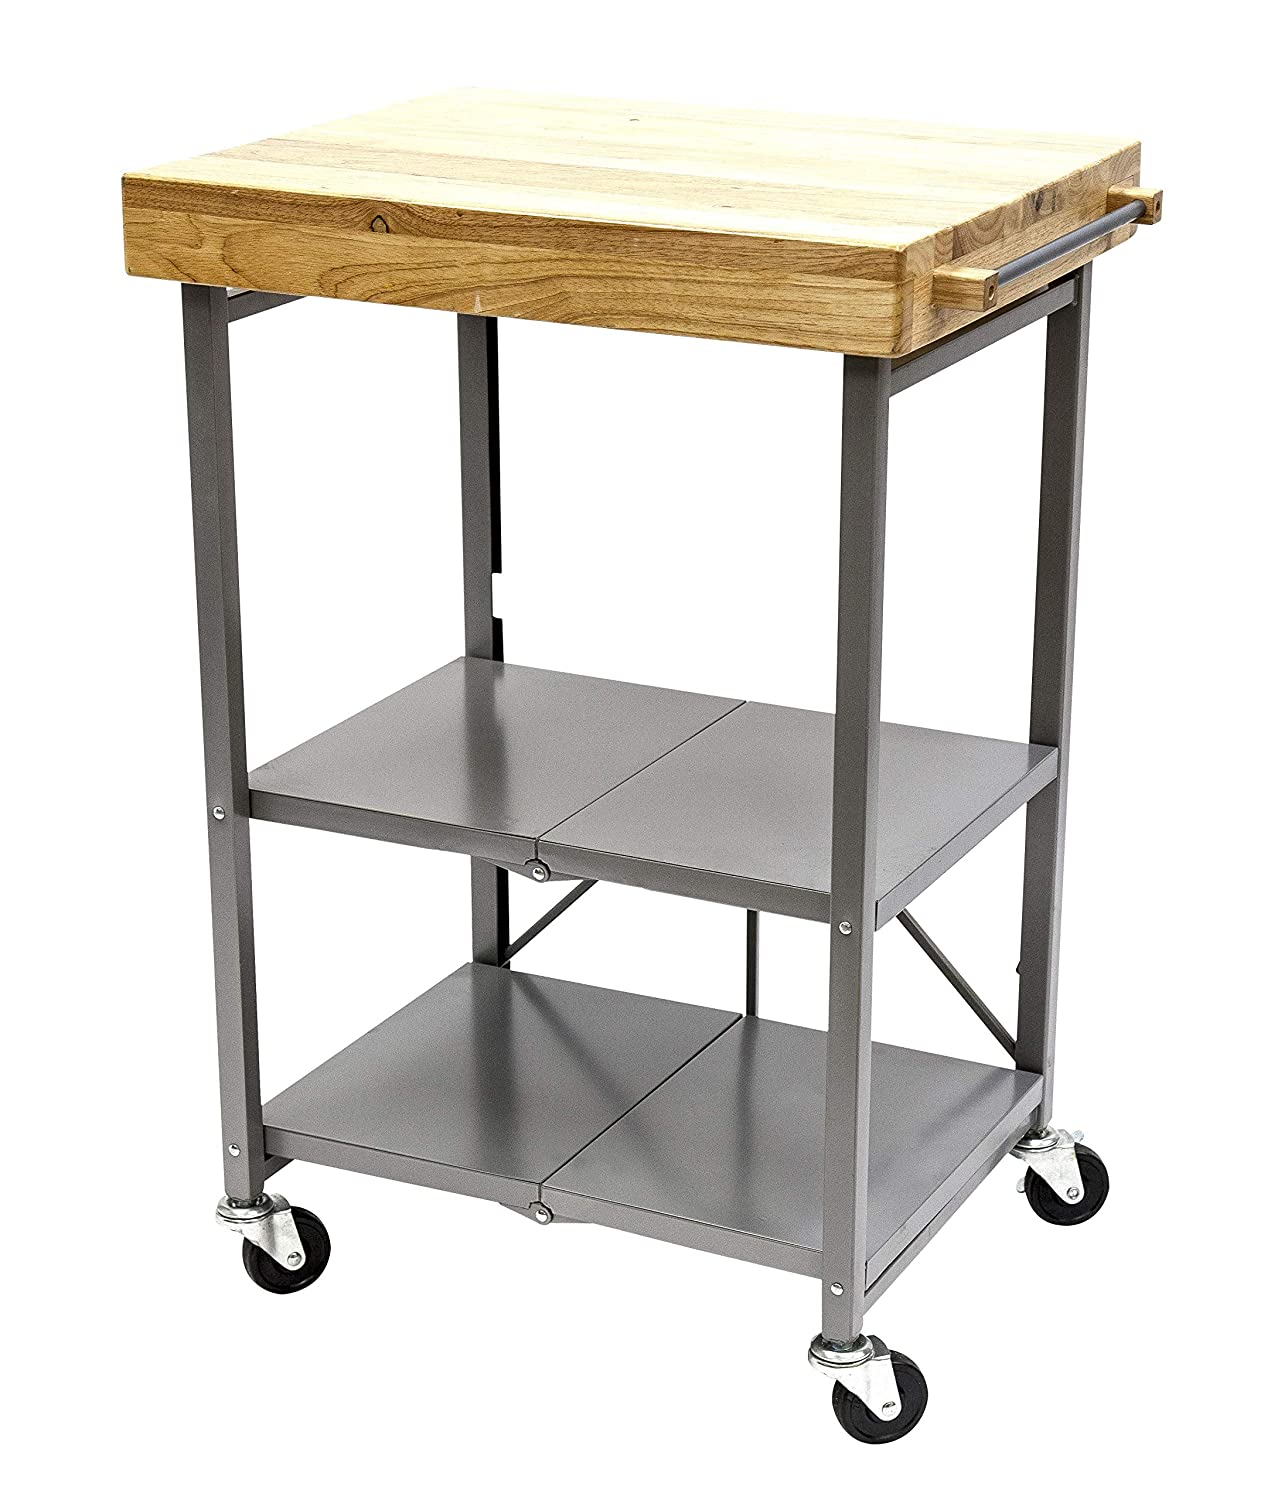 Origami Foldable Wheeled Portable Solid Wood Top Kitchen Island Bar Cart, Silver